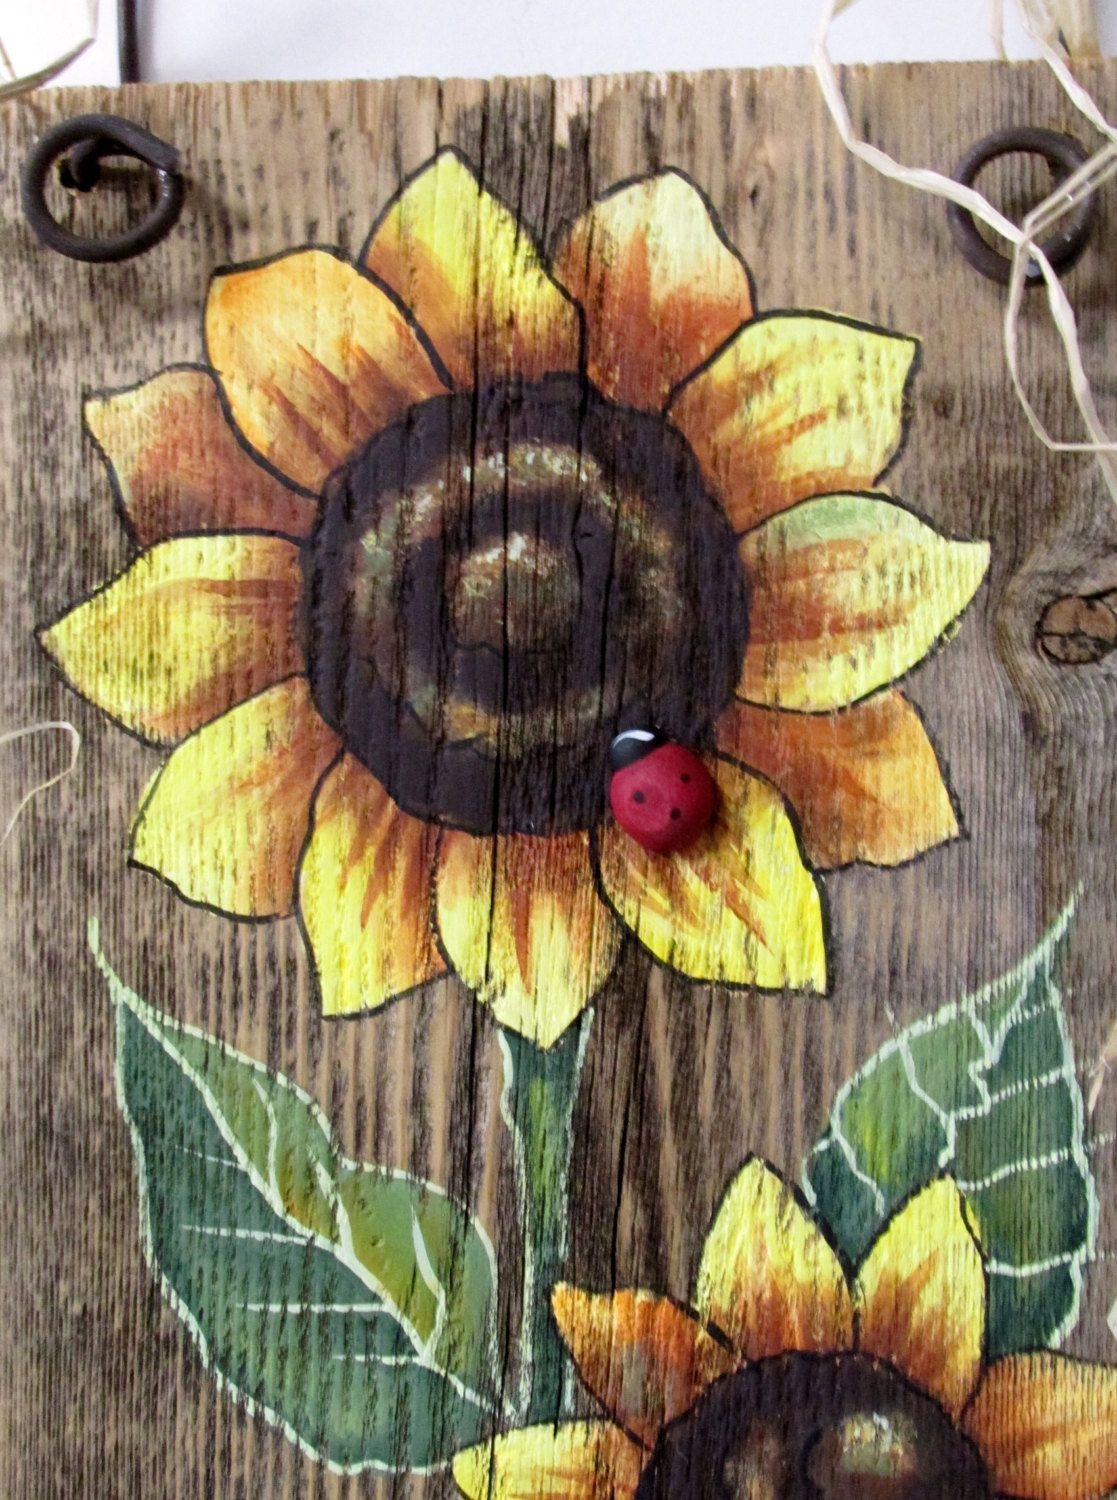 Sunflowers Yellow, Tole Painted on Reclaimed Barn Wood, Summer Time Flowers, Reclaimed Wood, Three Yellow Sunflowers and Red Lady Bug #tolepainting